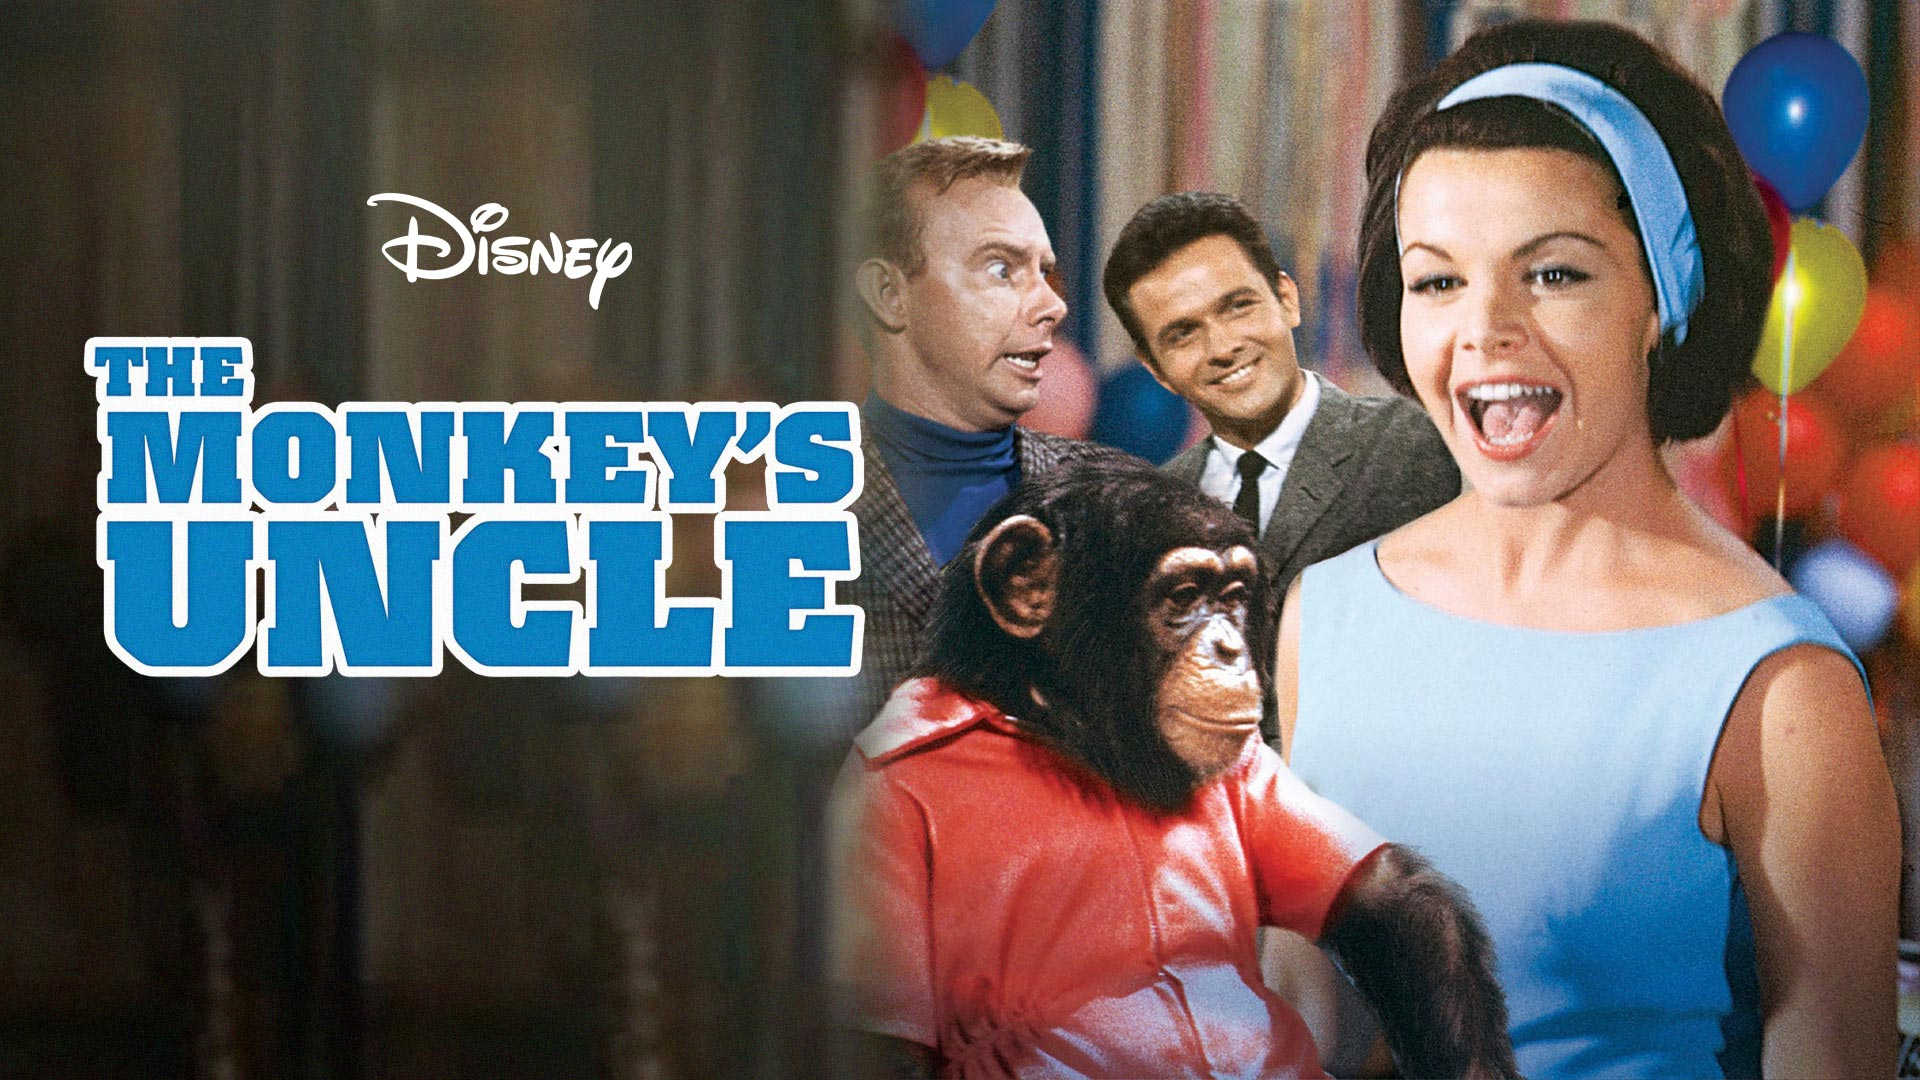 The Monkey's Uncle